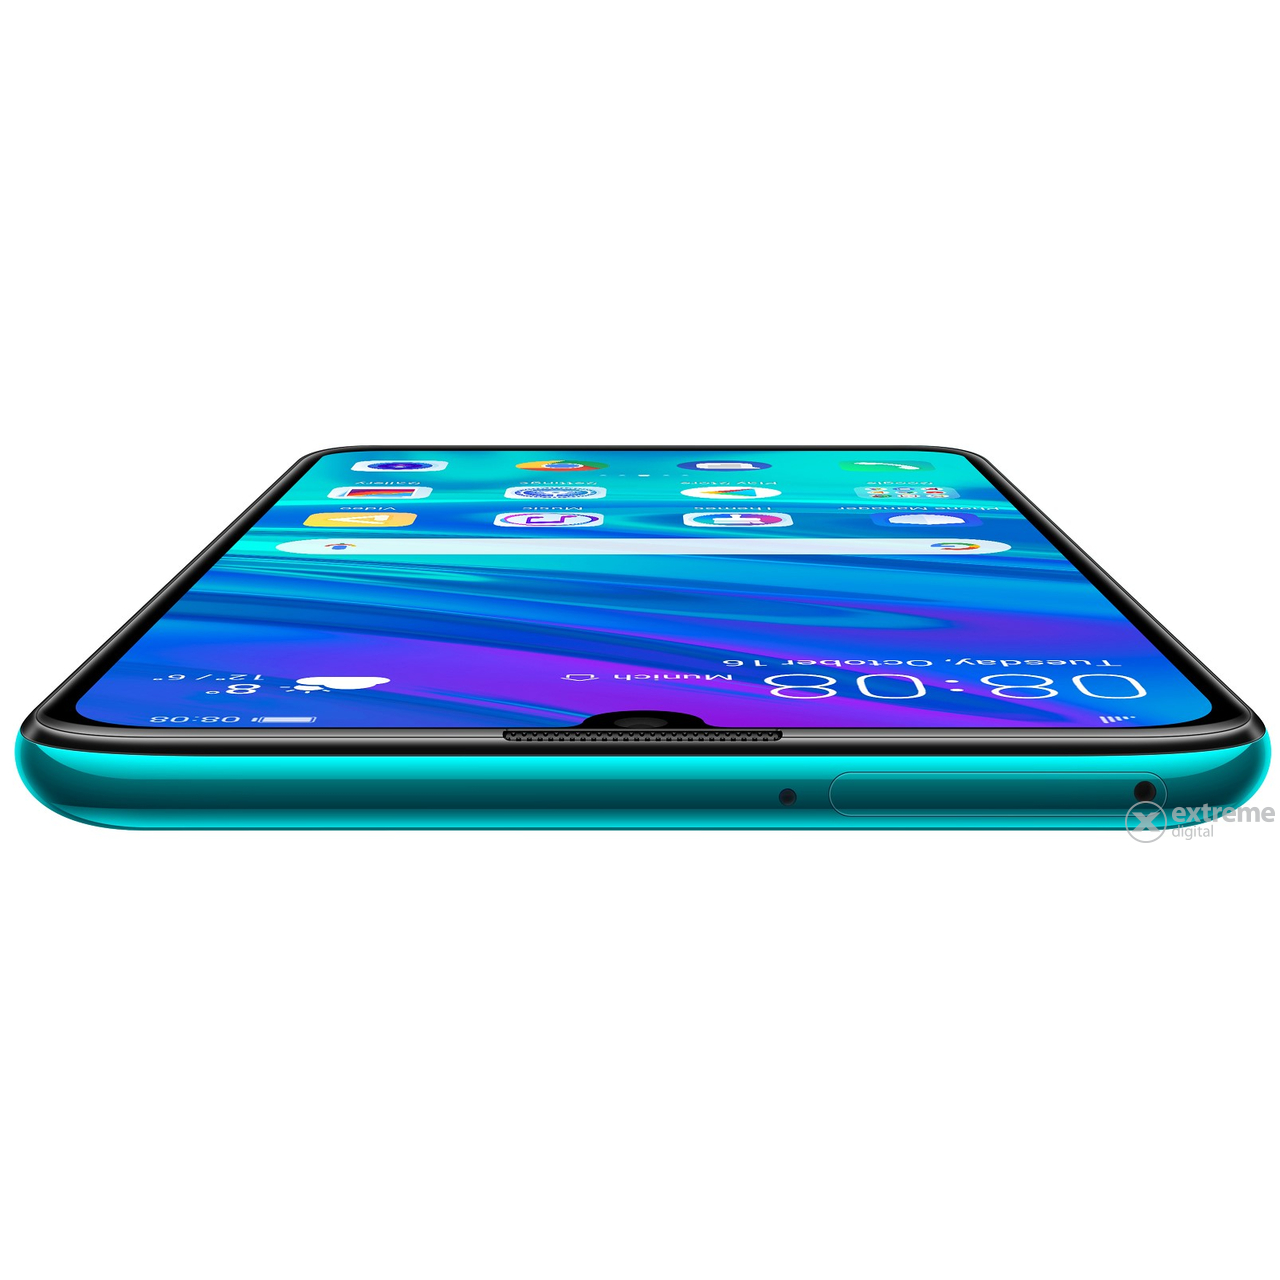 Huawei P смарт 2019 Dual SIM  смартфон, Aurora Blue (Android)